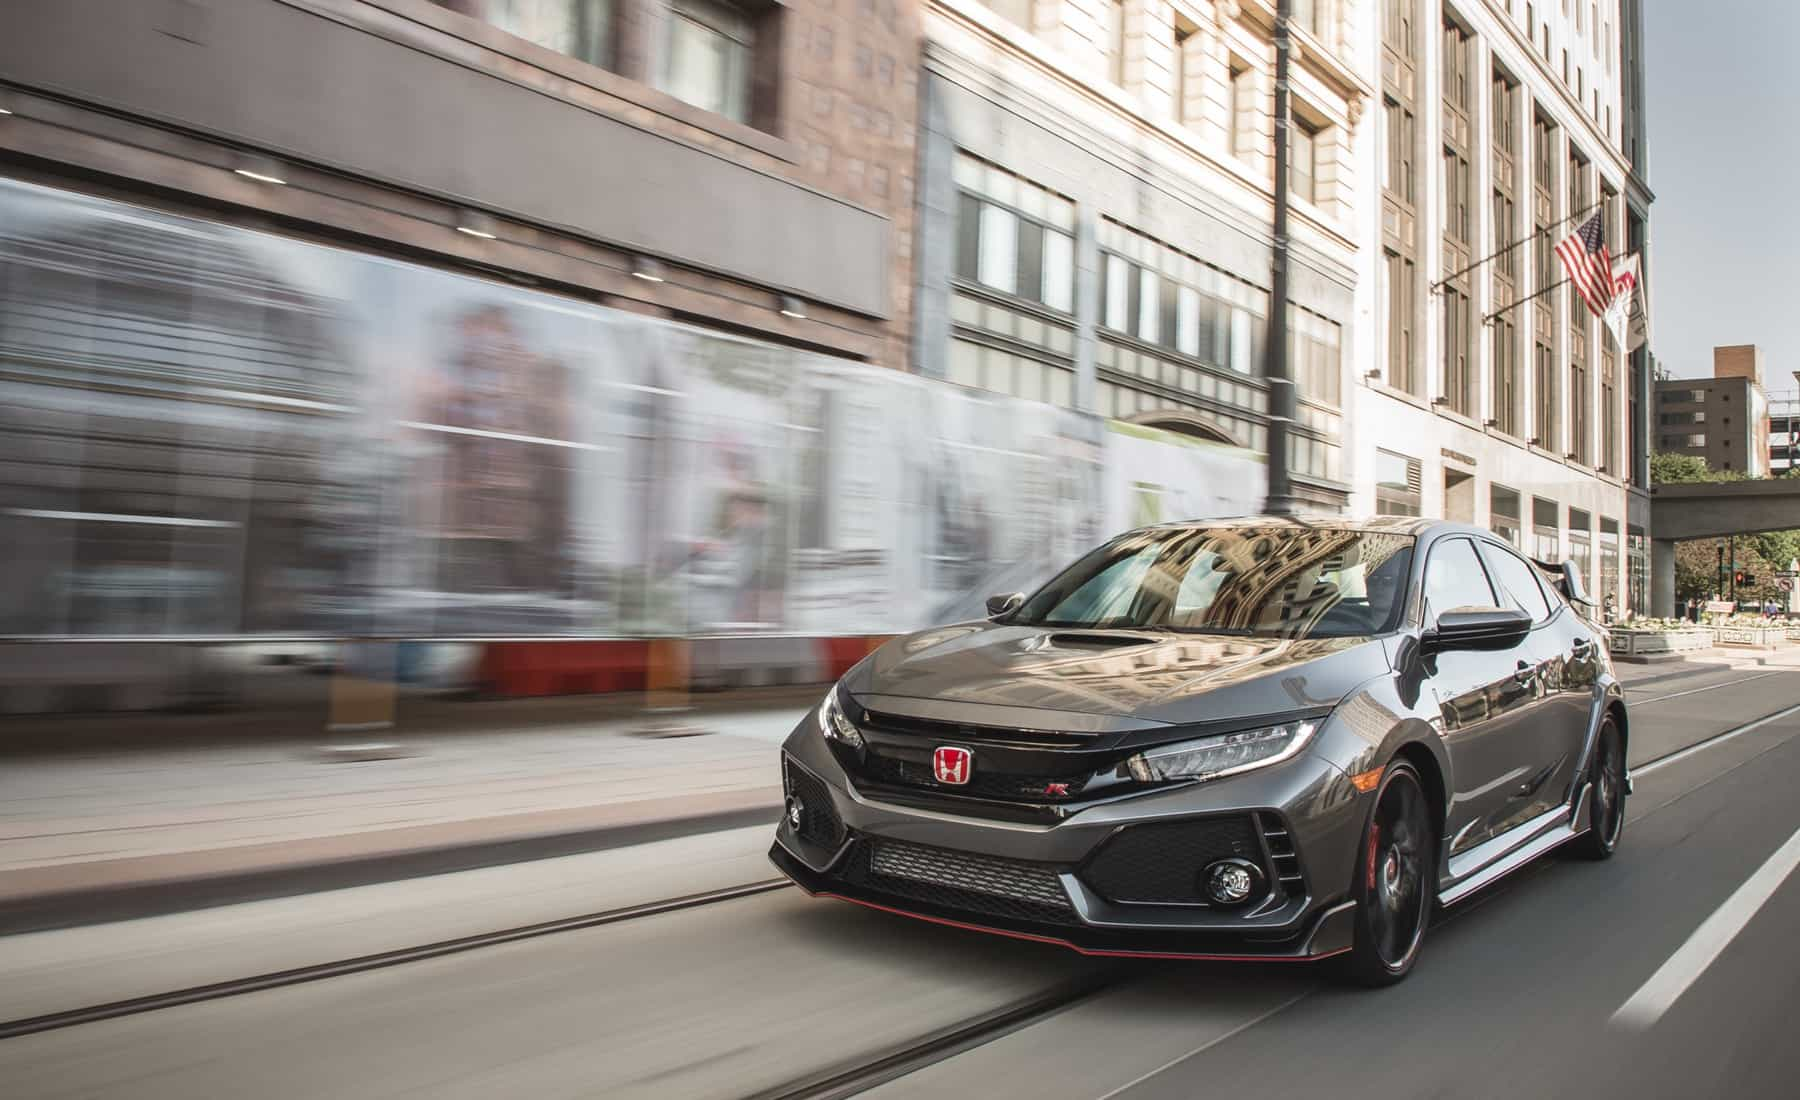 2017 Honda Civic Type R Test Drive (Photo 2 of 48)